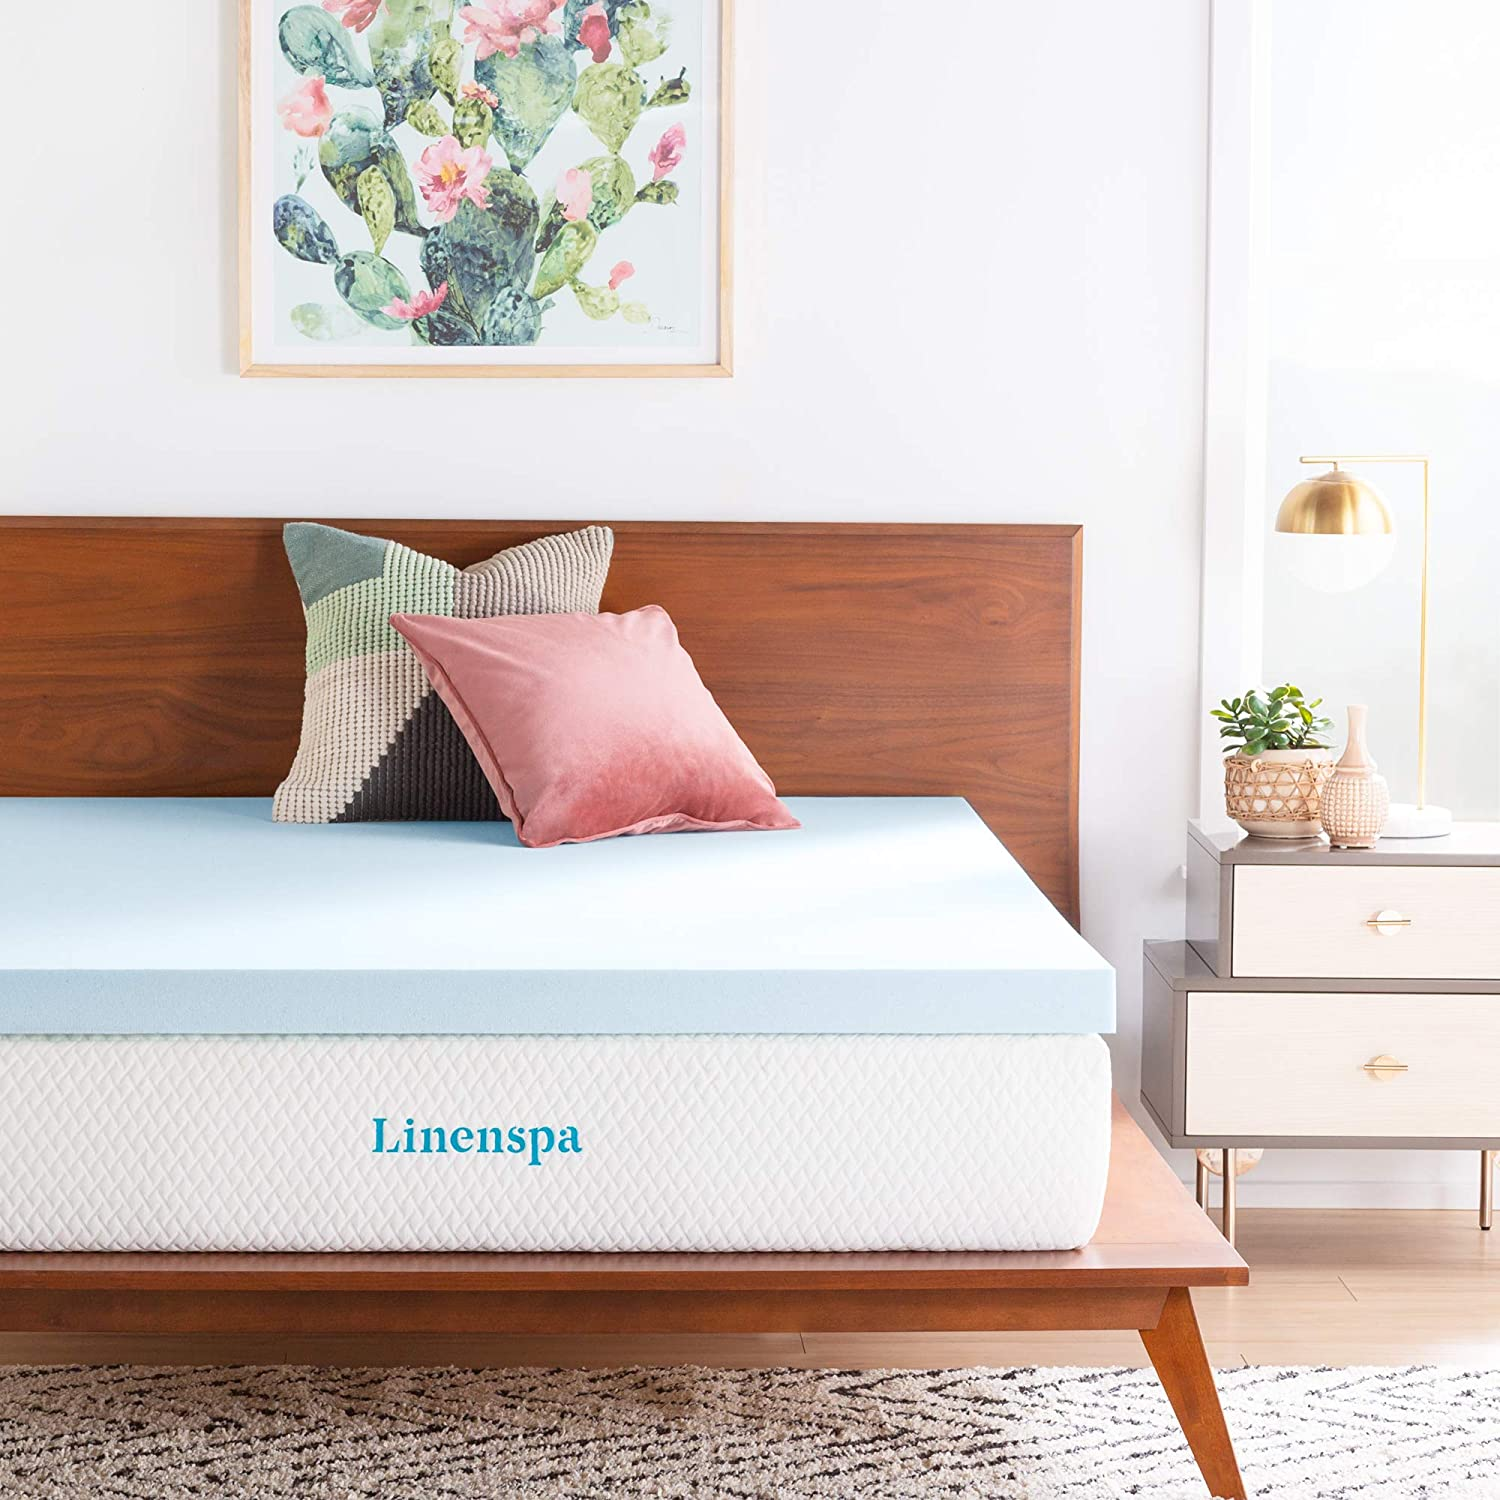 LINENSPA 3 Inch Gel Infused Memory Foam Mattress Topper - Cal King Size